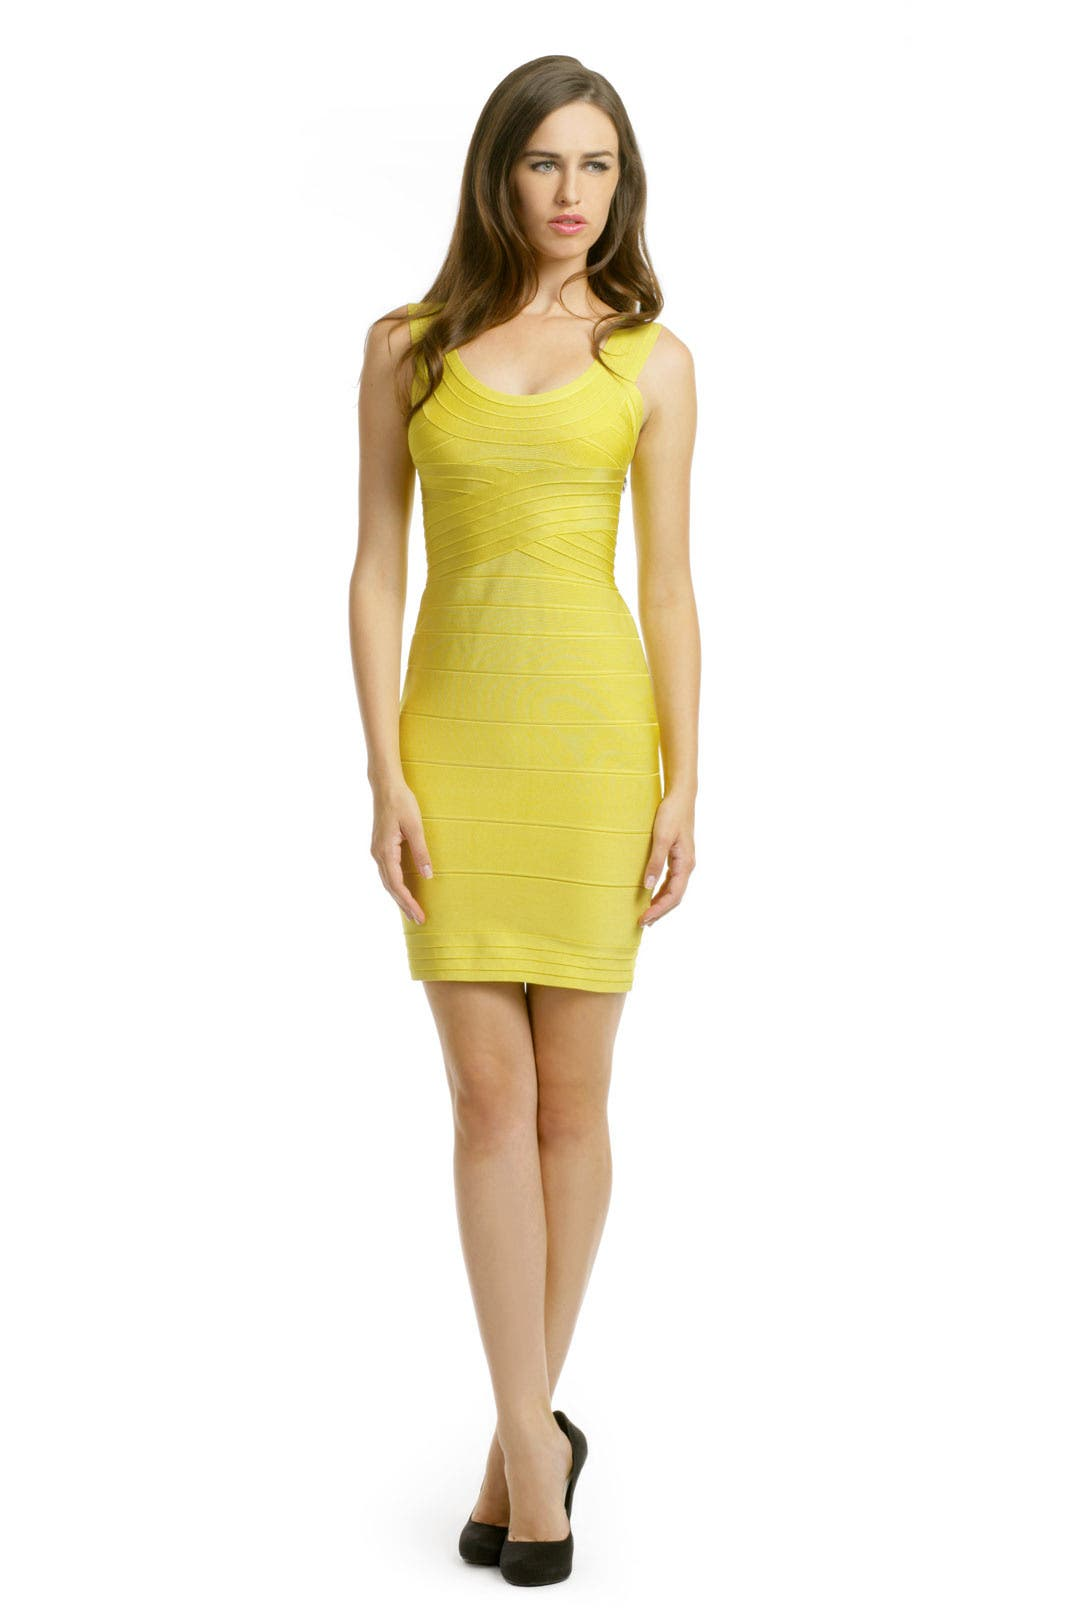 Lemon Lust Dress by Hervé Léger